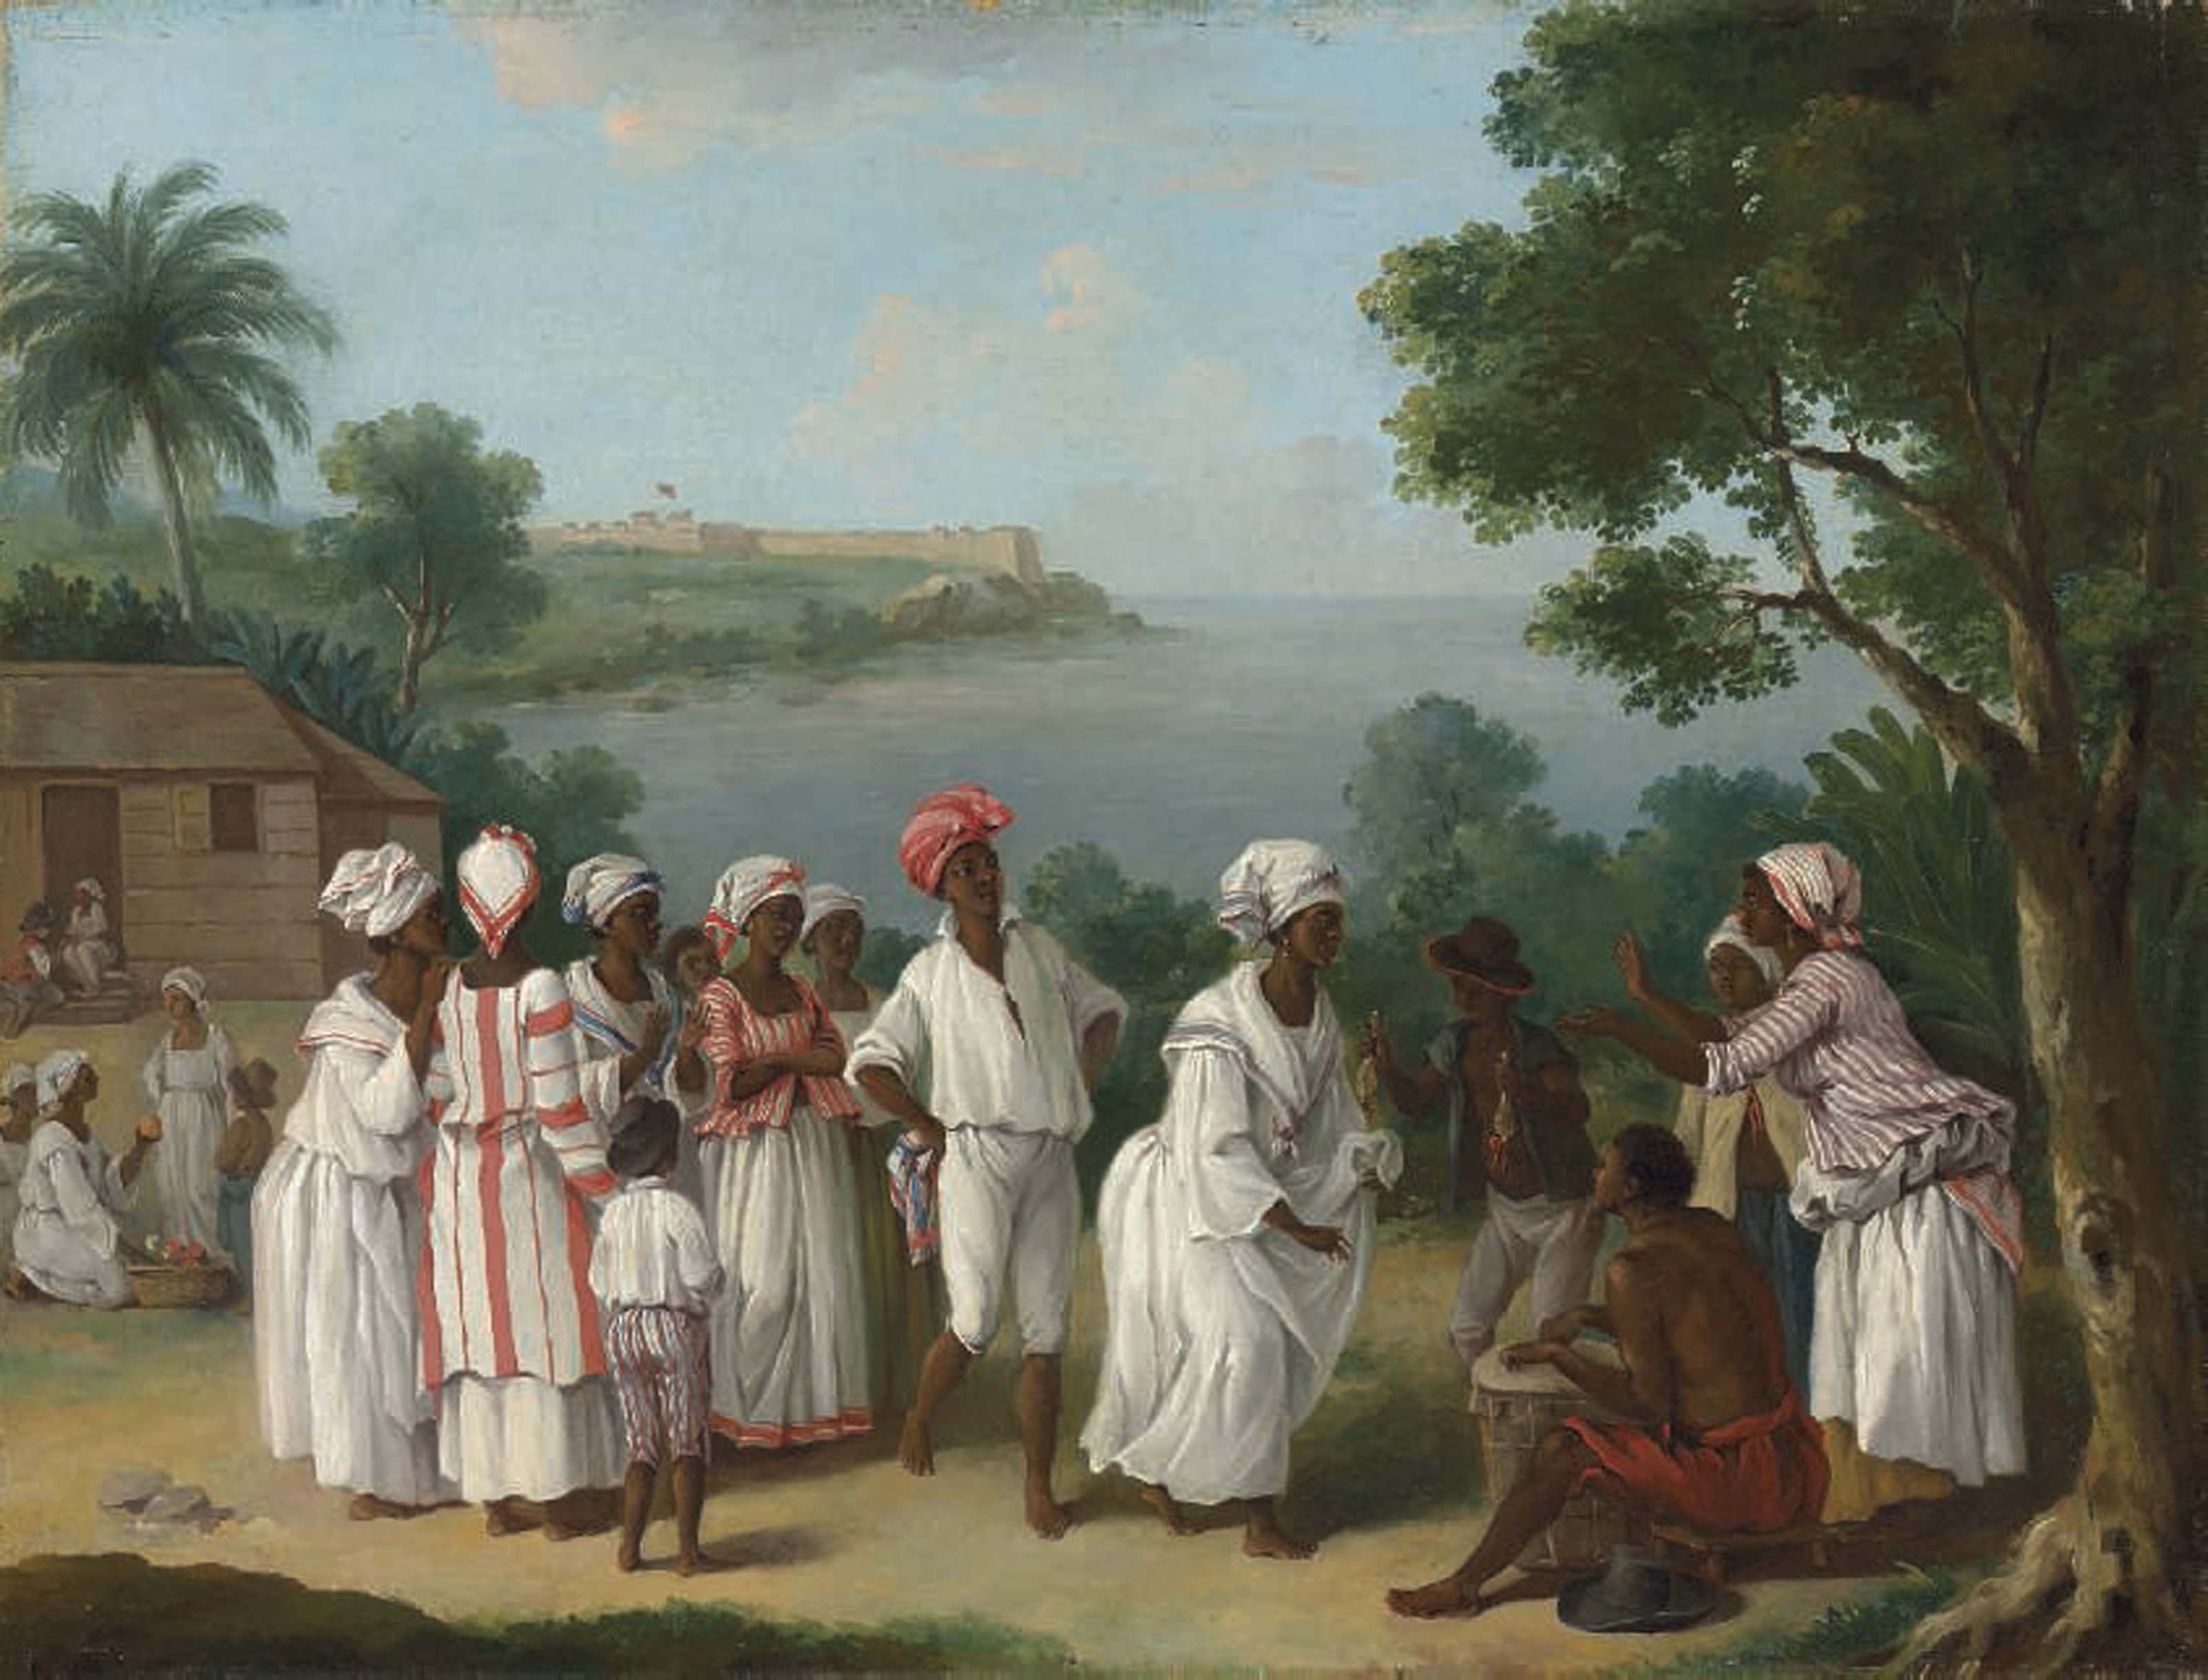 A negroes' dance in the island of Dominica, Fort Young beyond